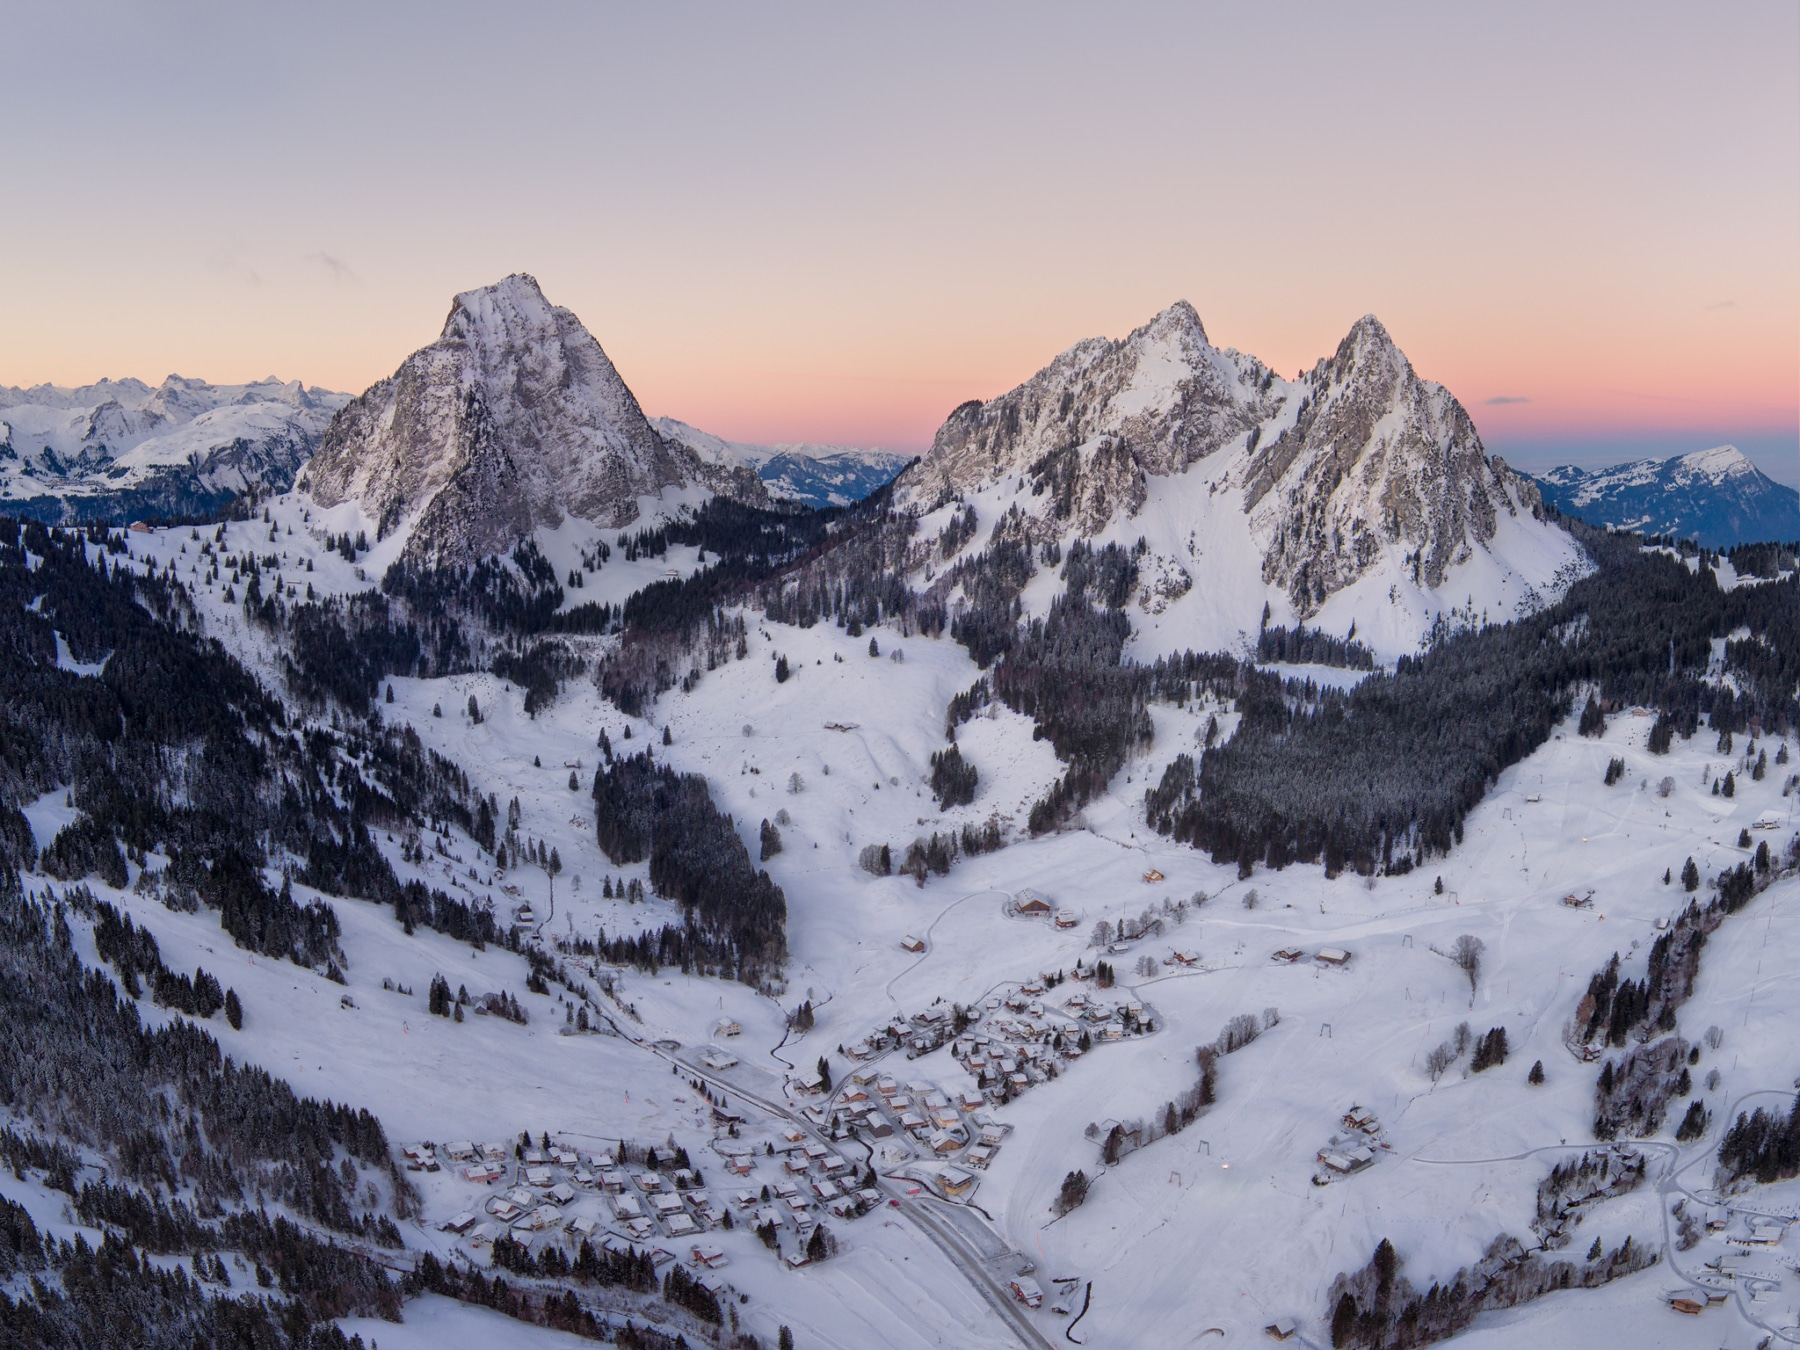 Switzerland, Schwyz, Alpthal, Grosser Mythen, kleine Mythen, just before Sunrise